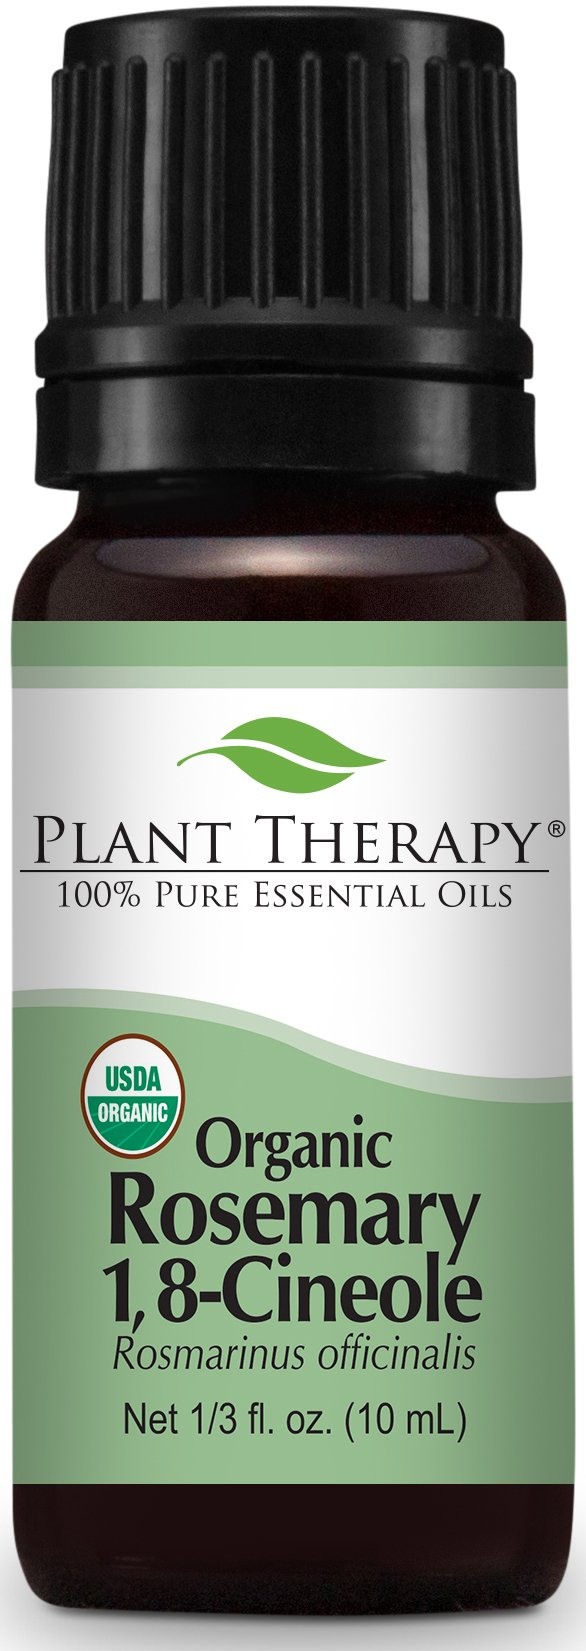 Plant Therapy Rosemary 1,8-Cineole Organic Essential Oil 10 mL (⅓ oz) 100% Pure, Undiluted, Therapeutic Grade